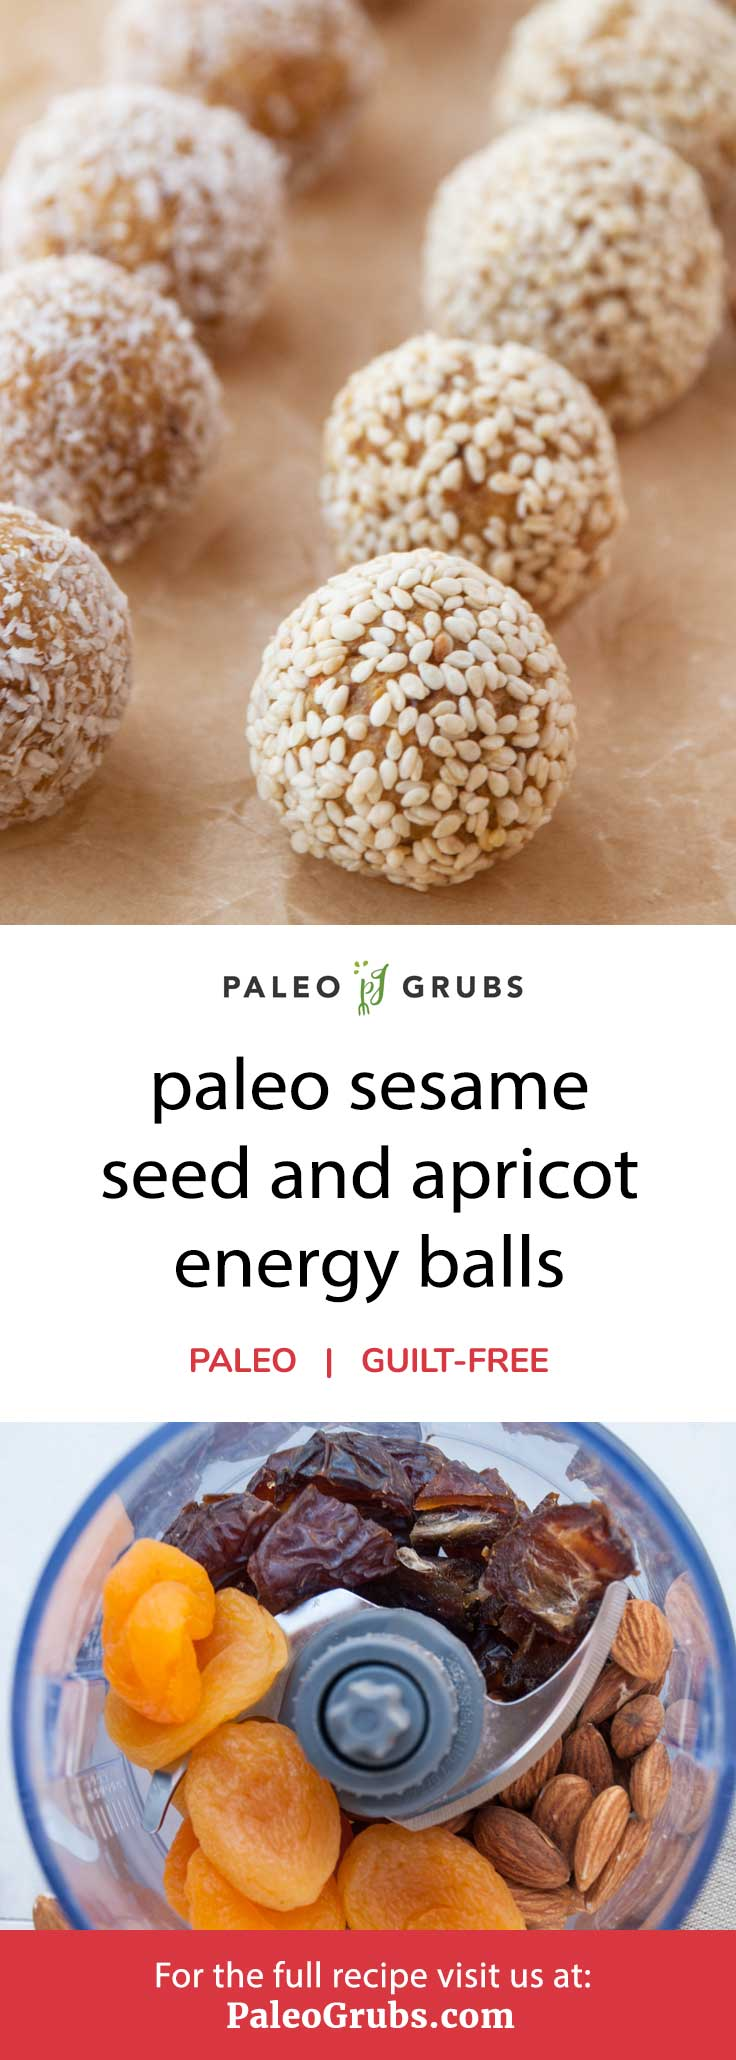 These apricot energy balls are so yum!